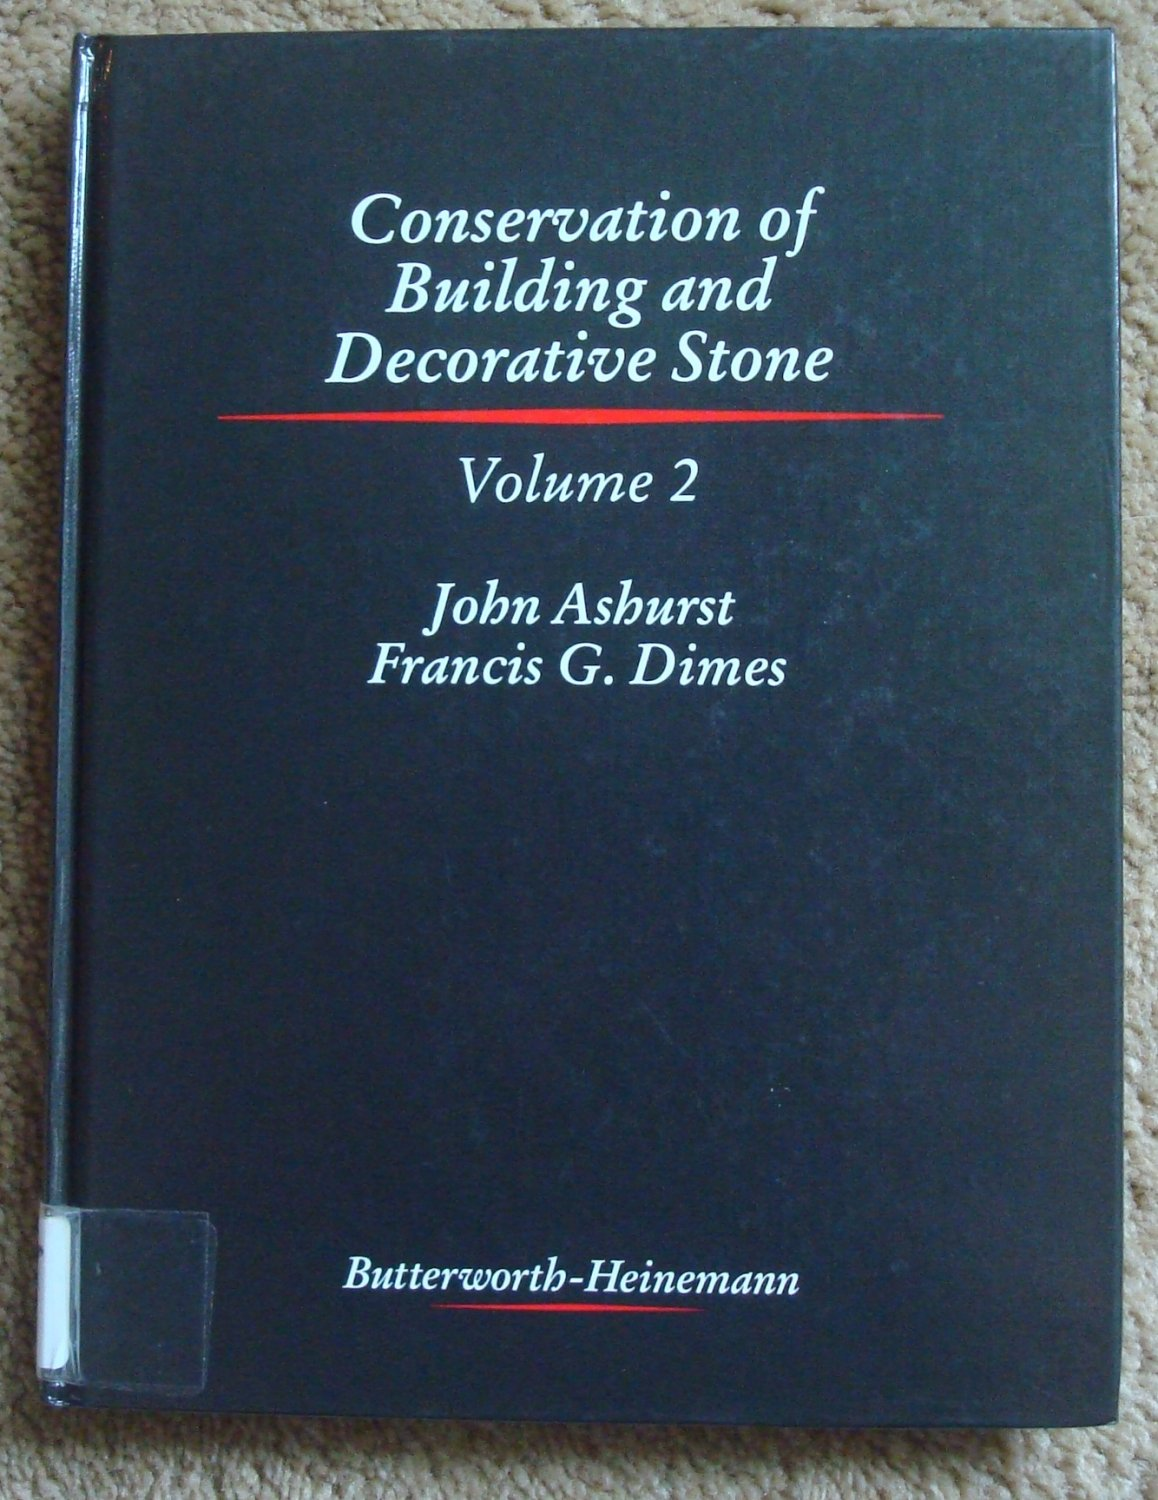 Conservation of Building and Decorative Stone - Volume 2